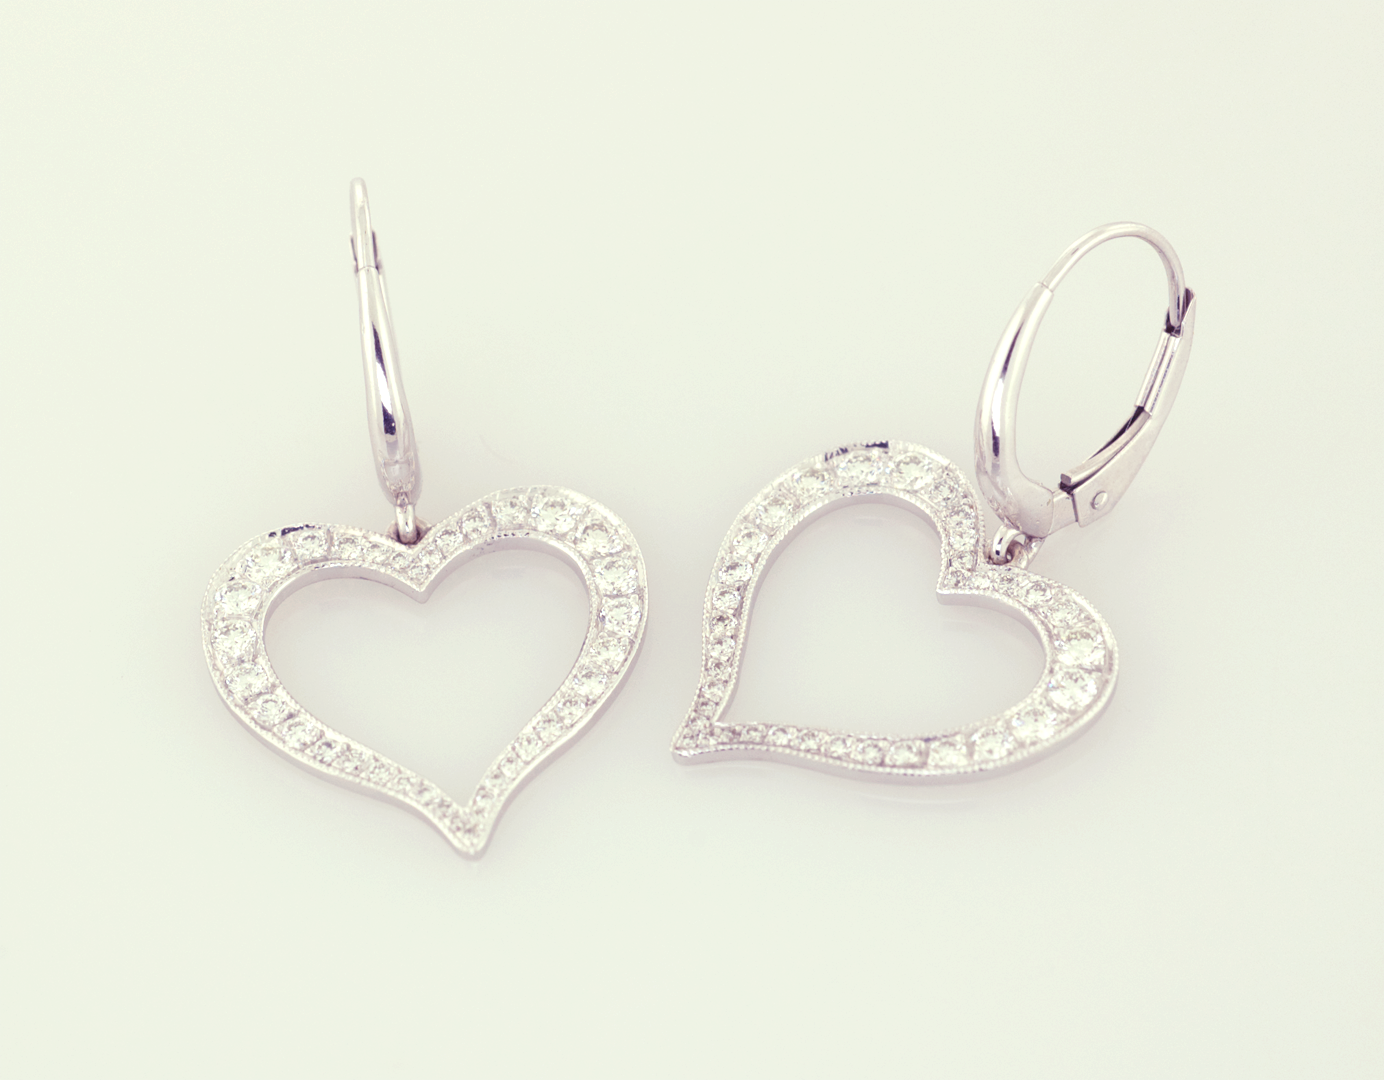 Diamond and 18KT white gold heart earrings